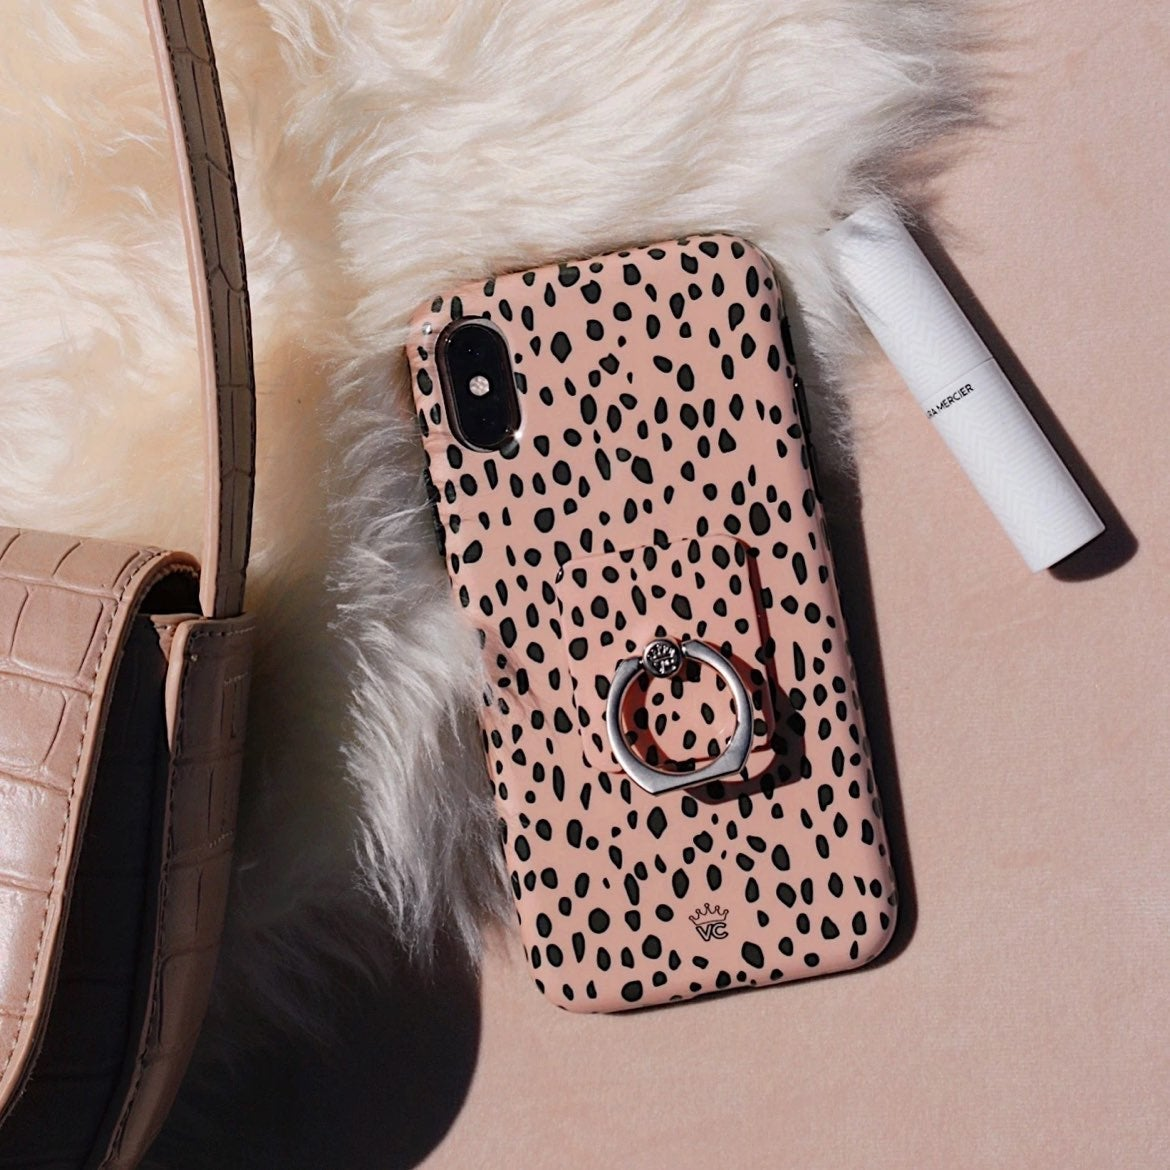 Velvet Apple 12 Pro Cheetah Phone Case